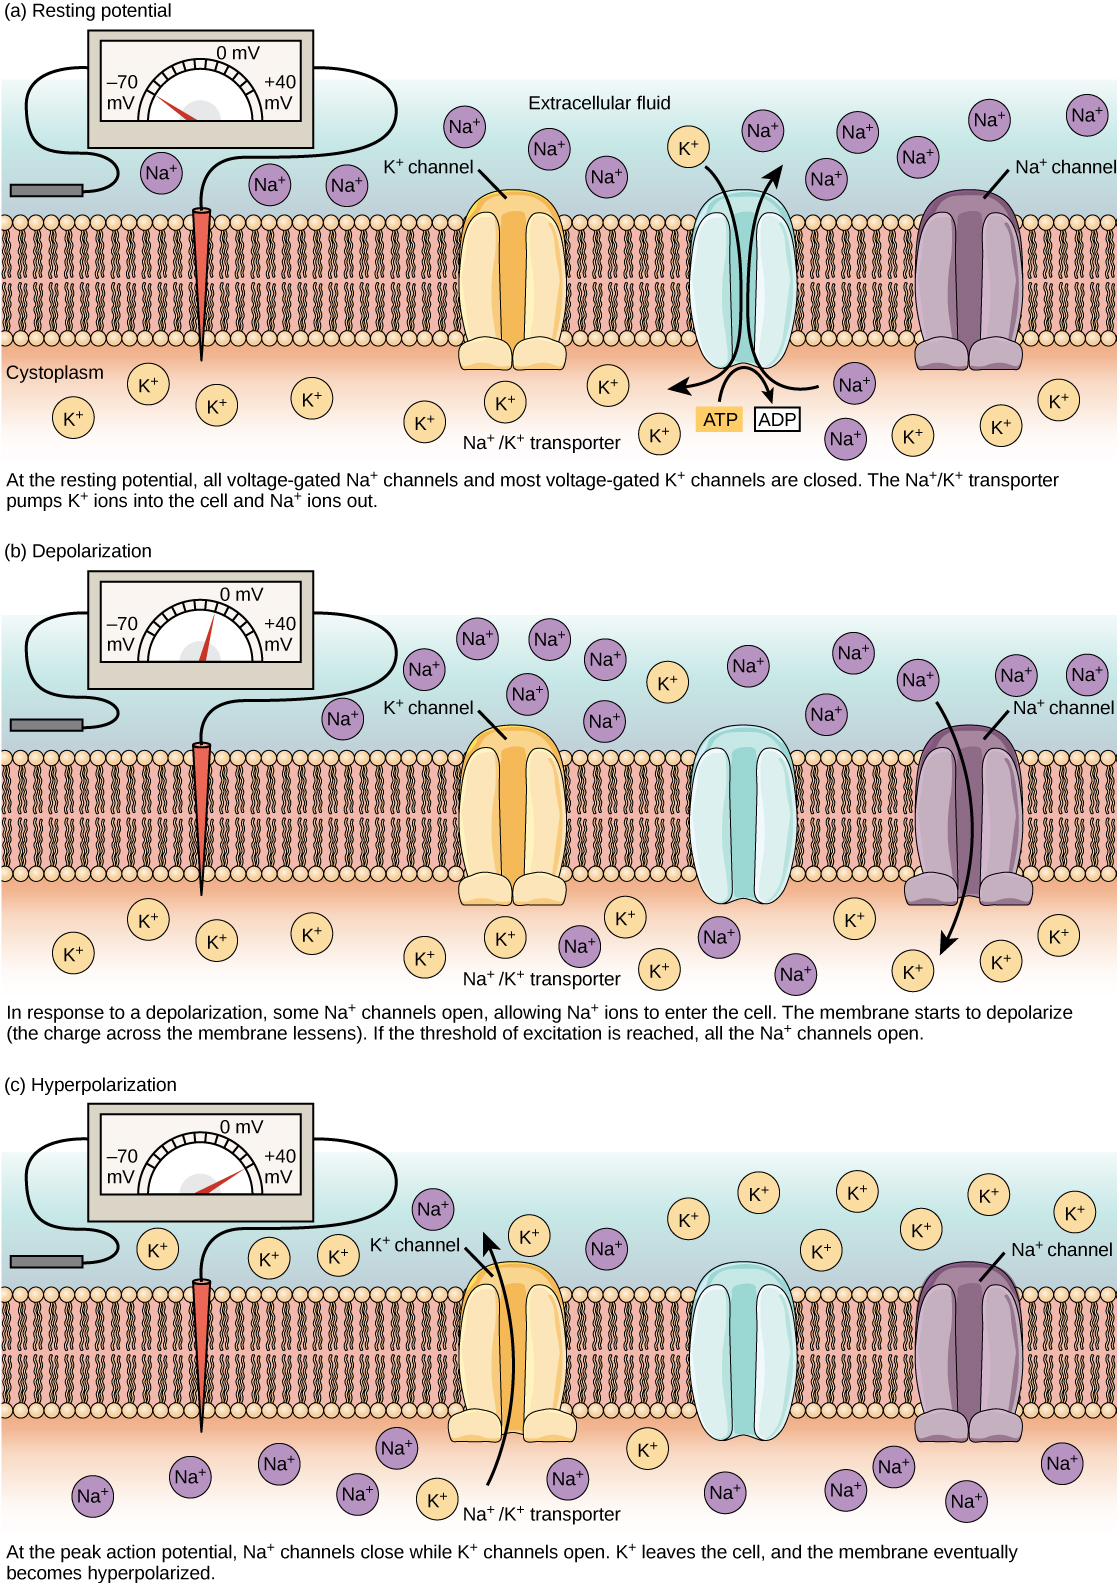 Voltage-gated ion channels open in response to changes in membrane potential.